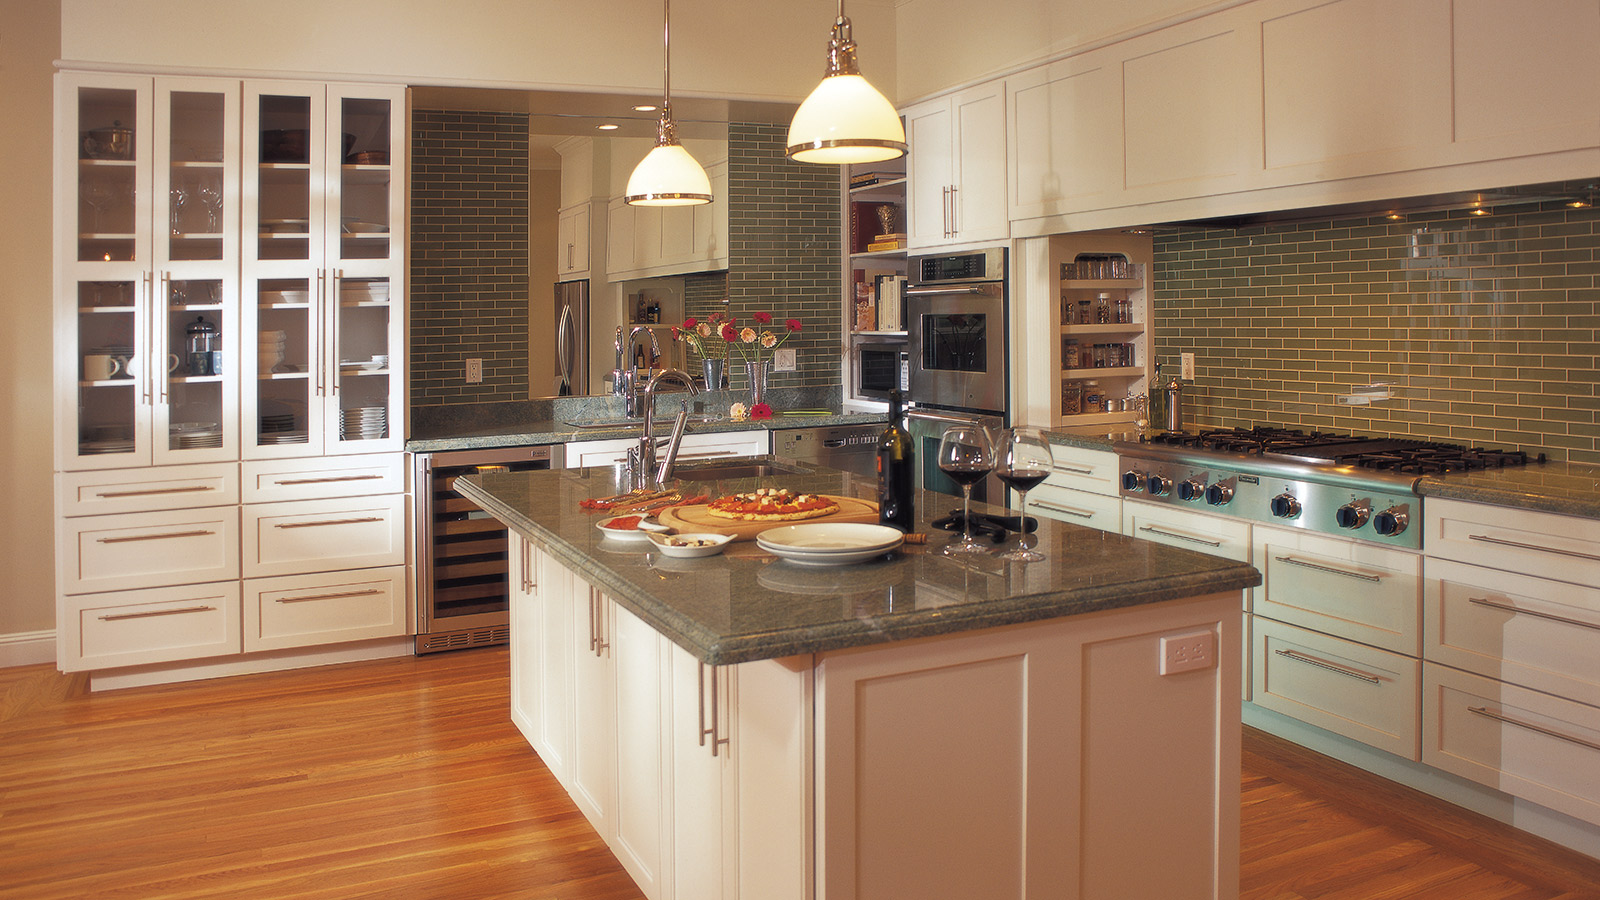 Off White Shaker Cabinets in a Contemporary Kitchen - Omega